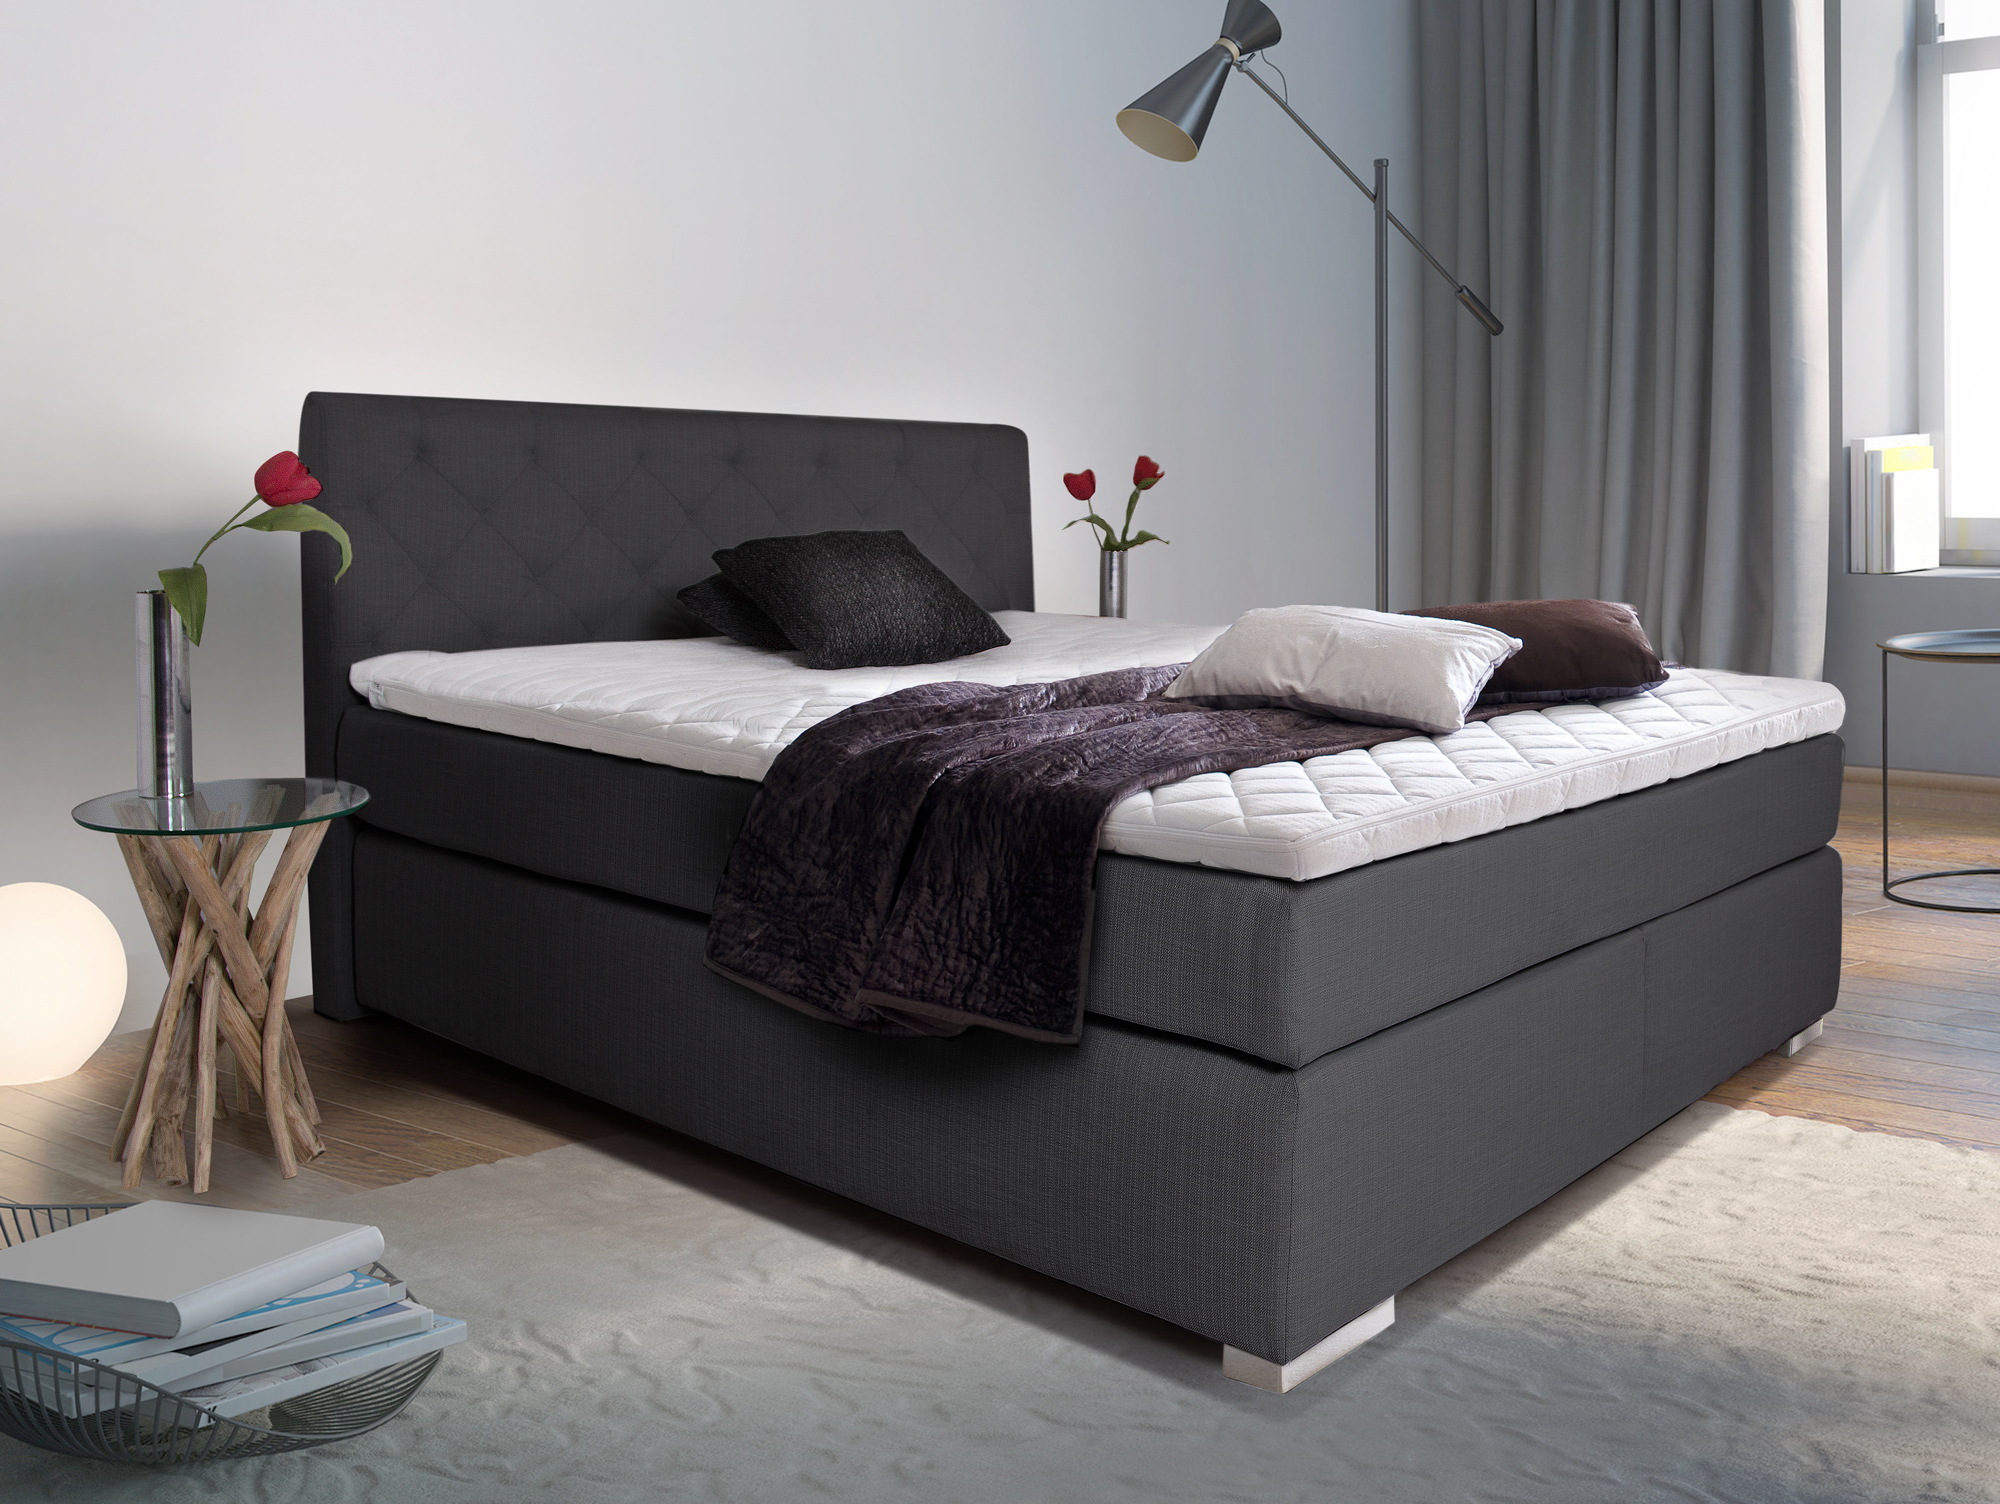 premium boxspringbett inkl kopfteil 180 x 200 cm. Black Bedroom Furniture Sets. Home Design Ideas